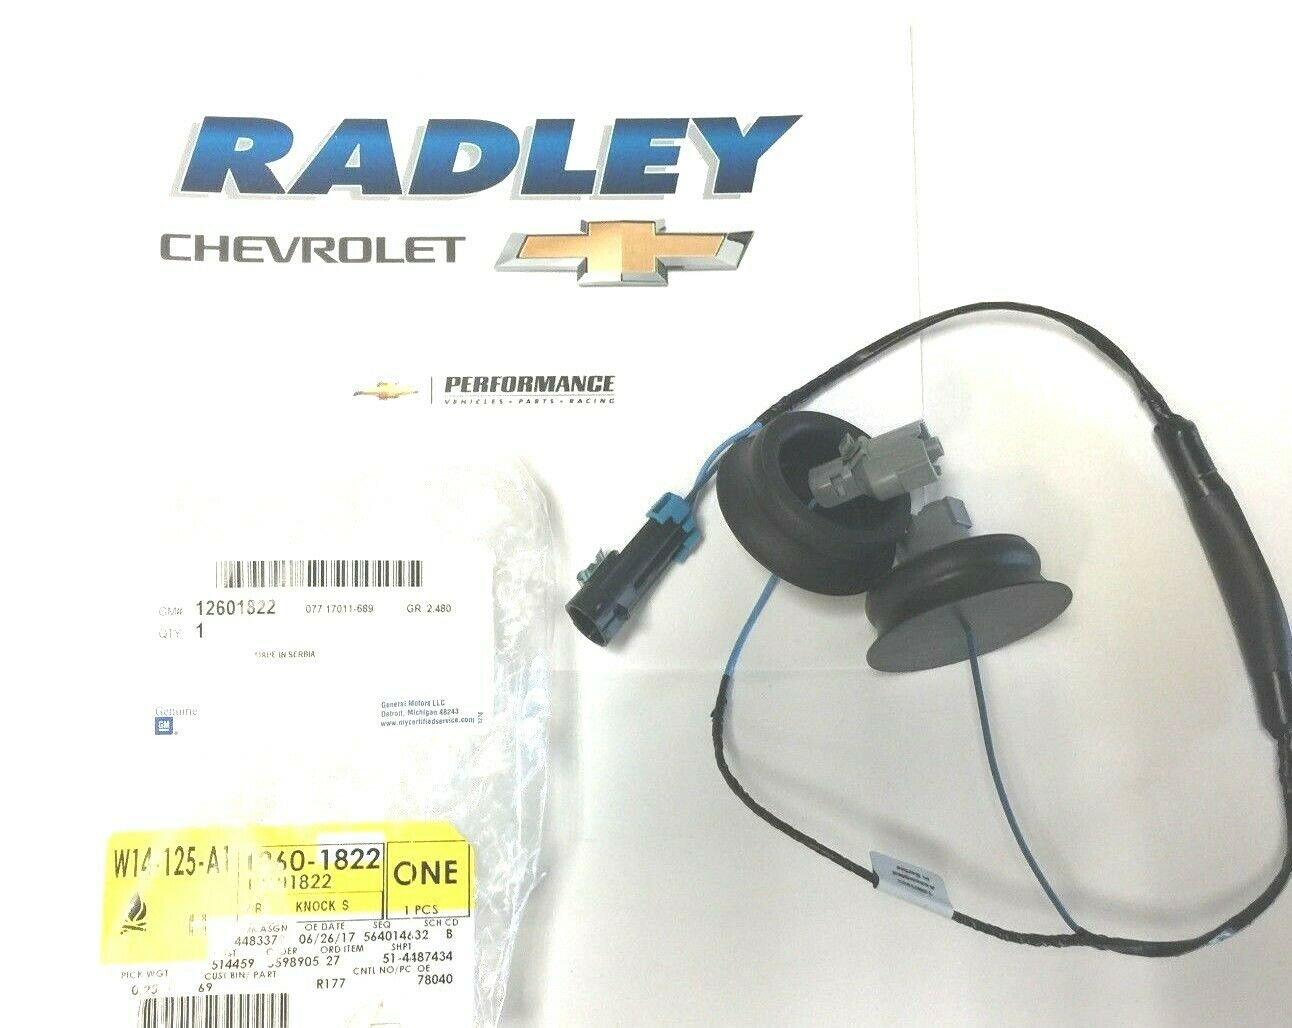 Oem New Gm Chevrolet Gmc Cadillac Pontiac Knock Sensor Wire Harness Wiring 12601822 1 Of 2free Shipping See More